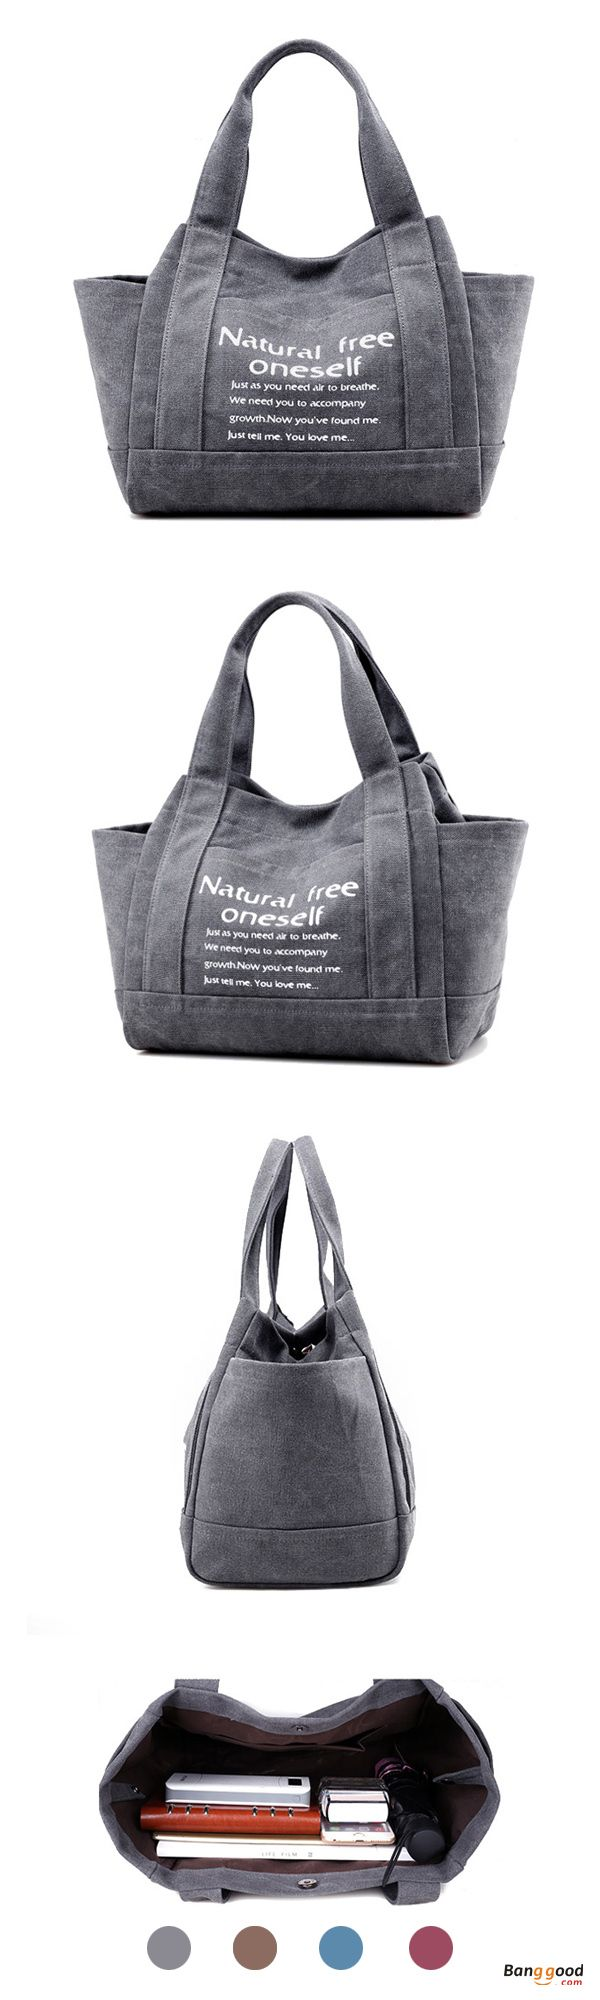 US$25.73+Free shipping. Women Bags, Tote Handbags, Shoulder Bags, Shopping Bags. Casual, Canvas, Large Capacity. Color: Coffee, Purple, Gray, Blue. Shop now~